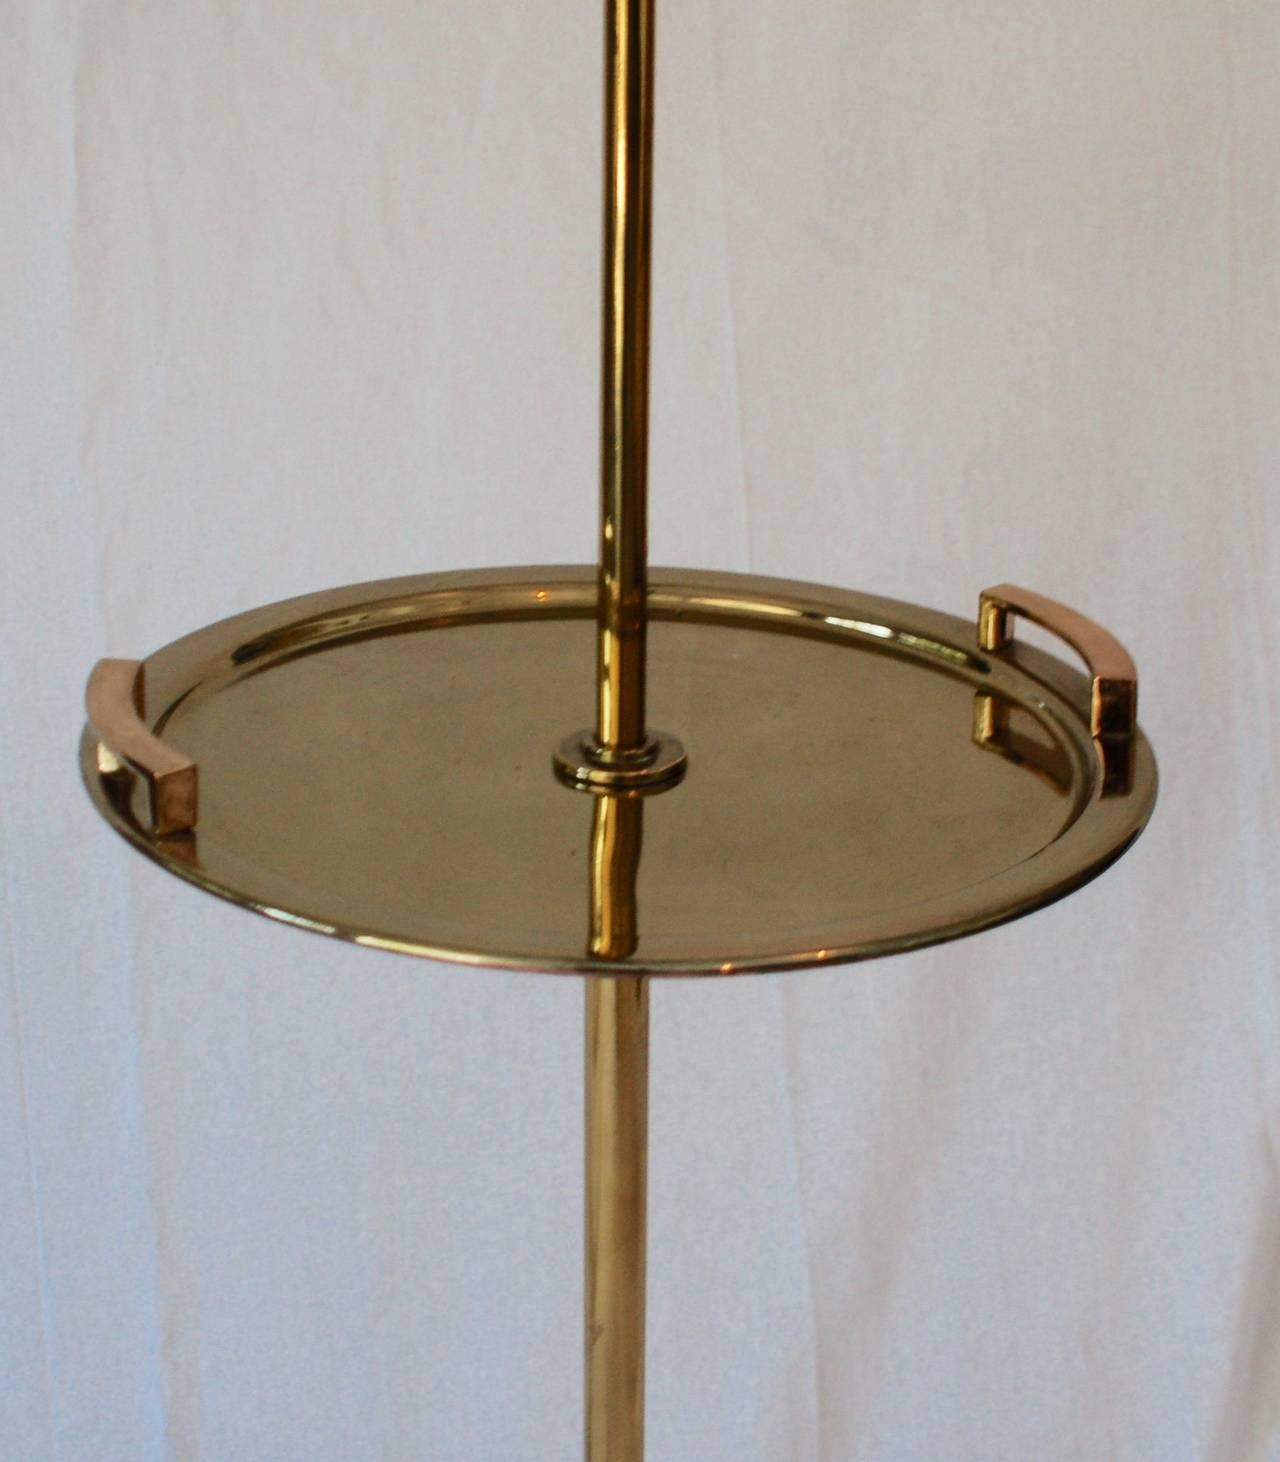 Brass Floor Standing Lamp With Brass Tray Table   Image 2 Of 7